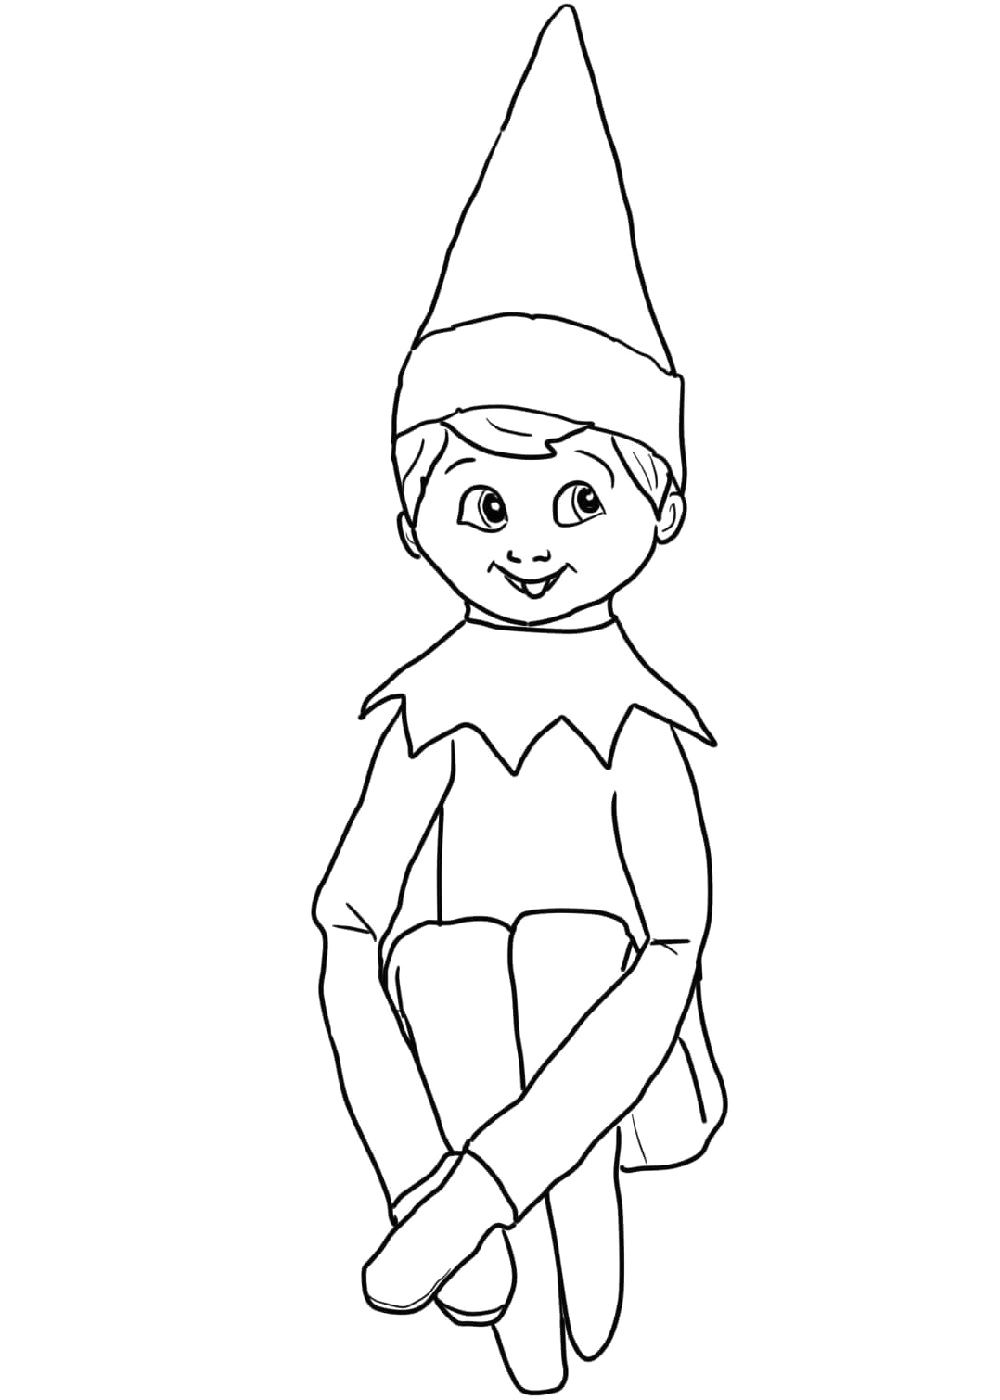 Elf On the Shelf Boy Coloring Pages Baby Elf the Shelf Coloring Pages Design Collection